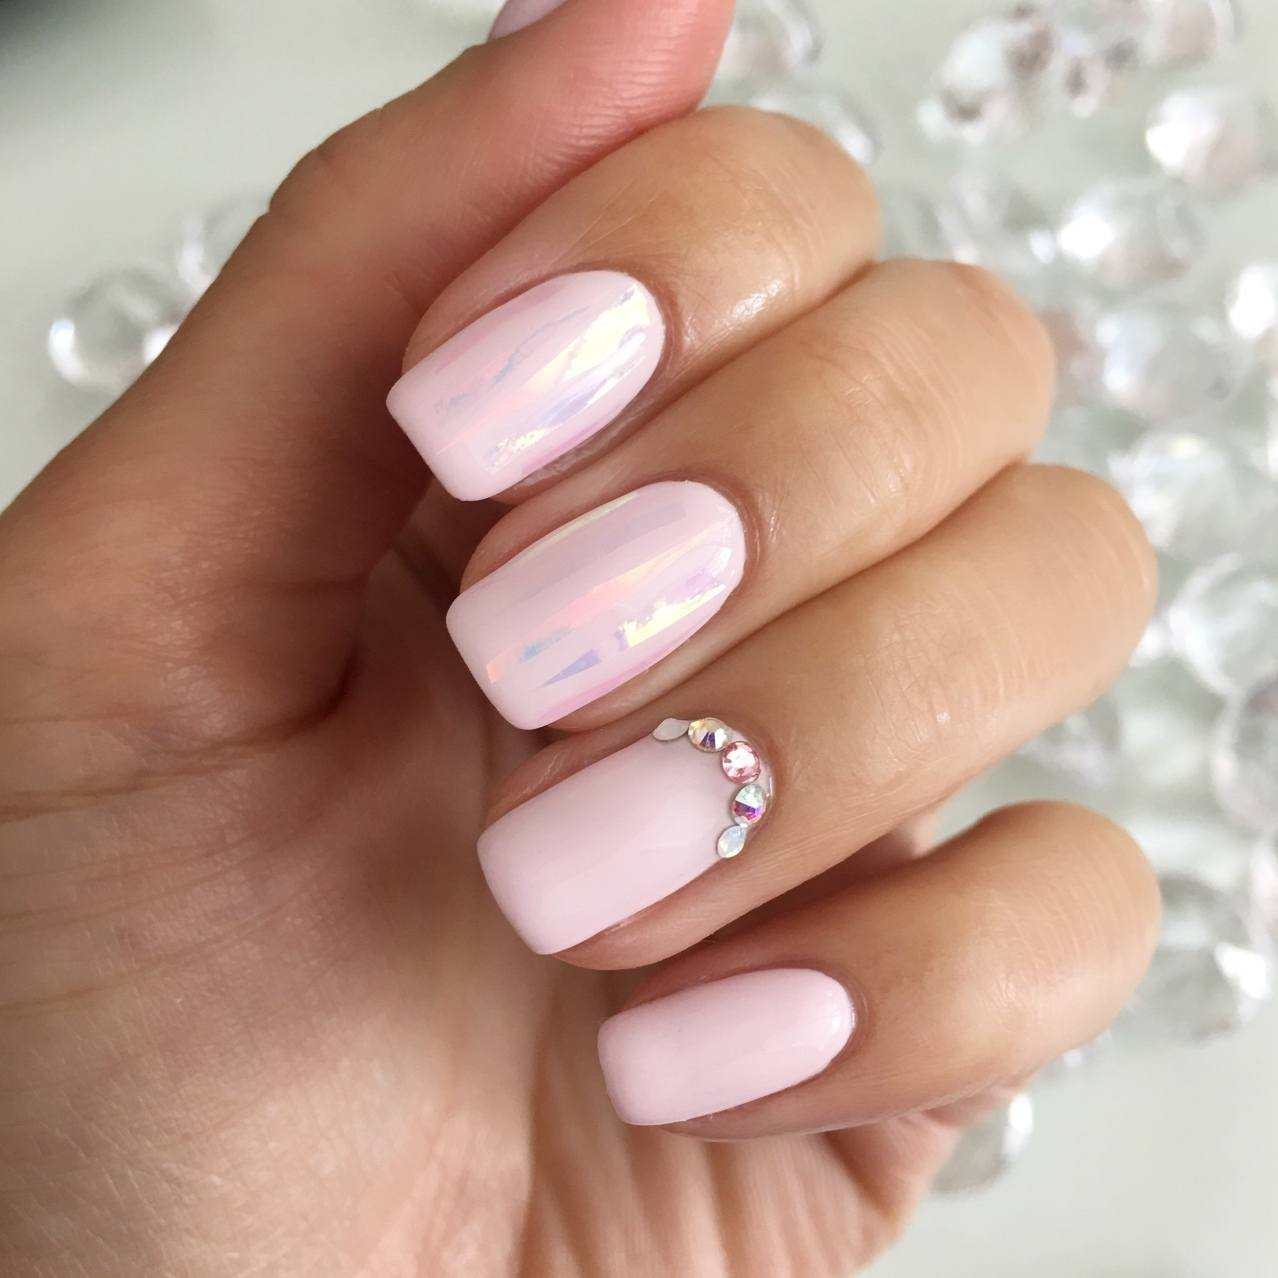 Gel nail polish on acrylic nails - Expression Nails